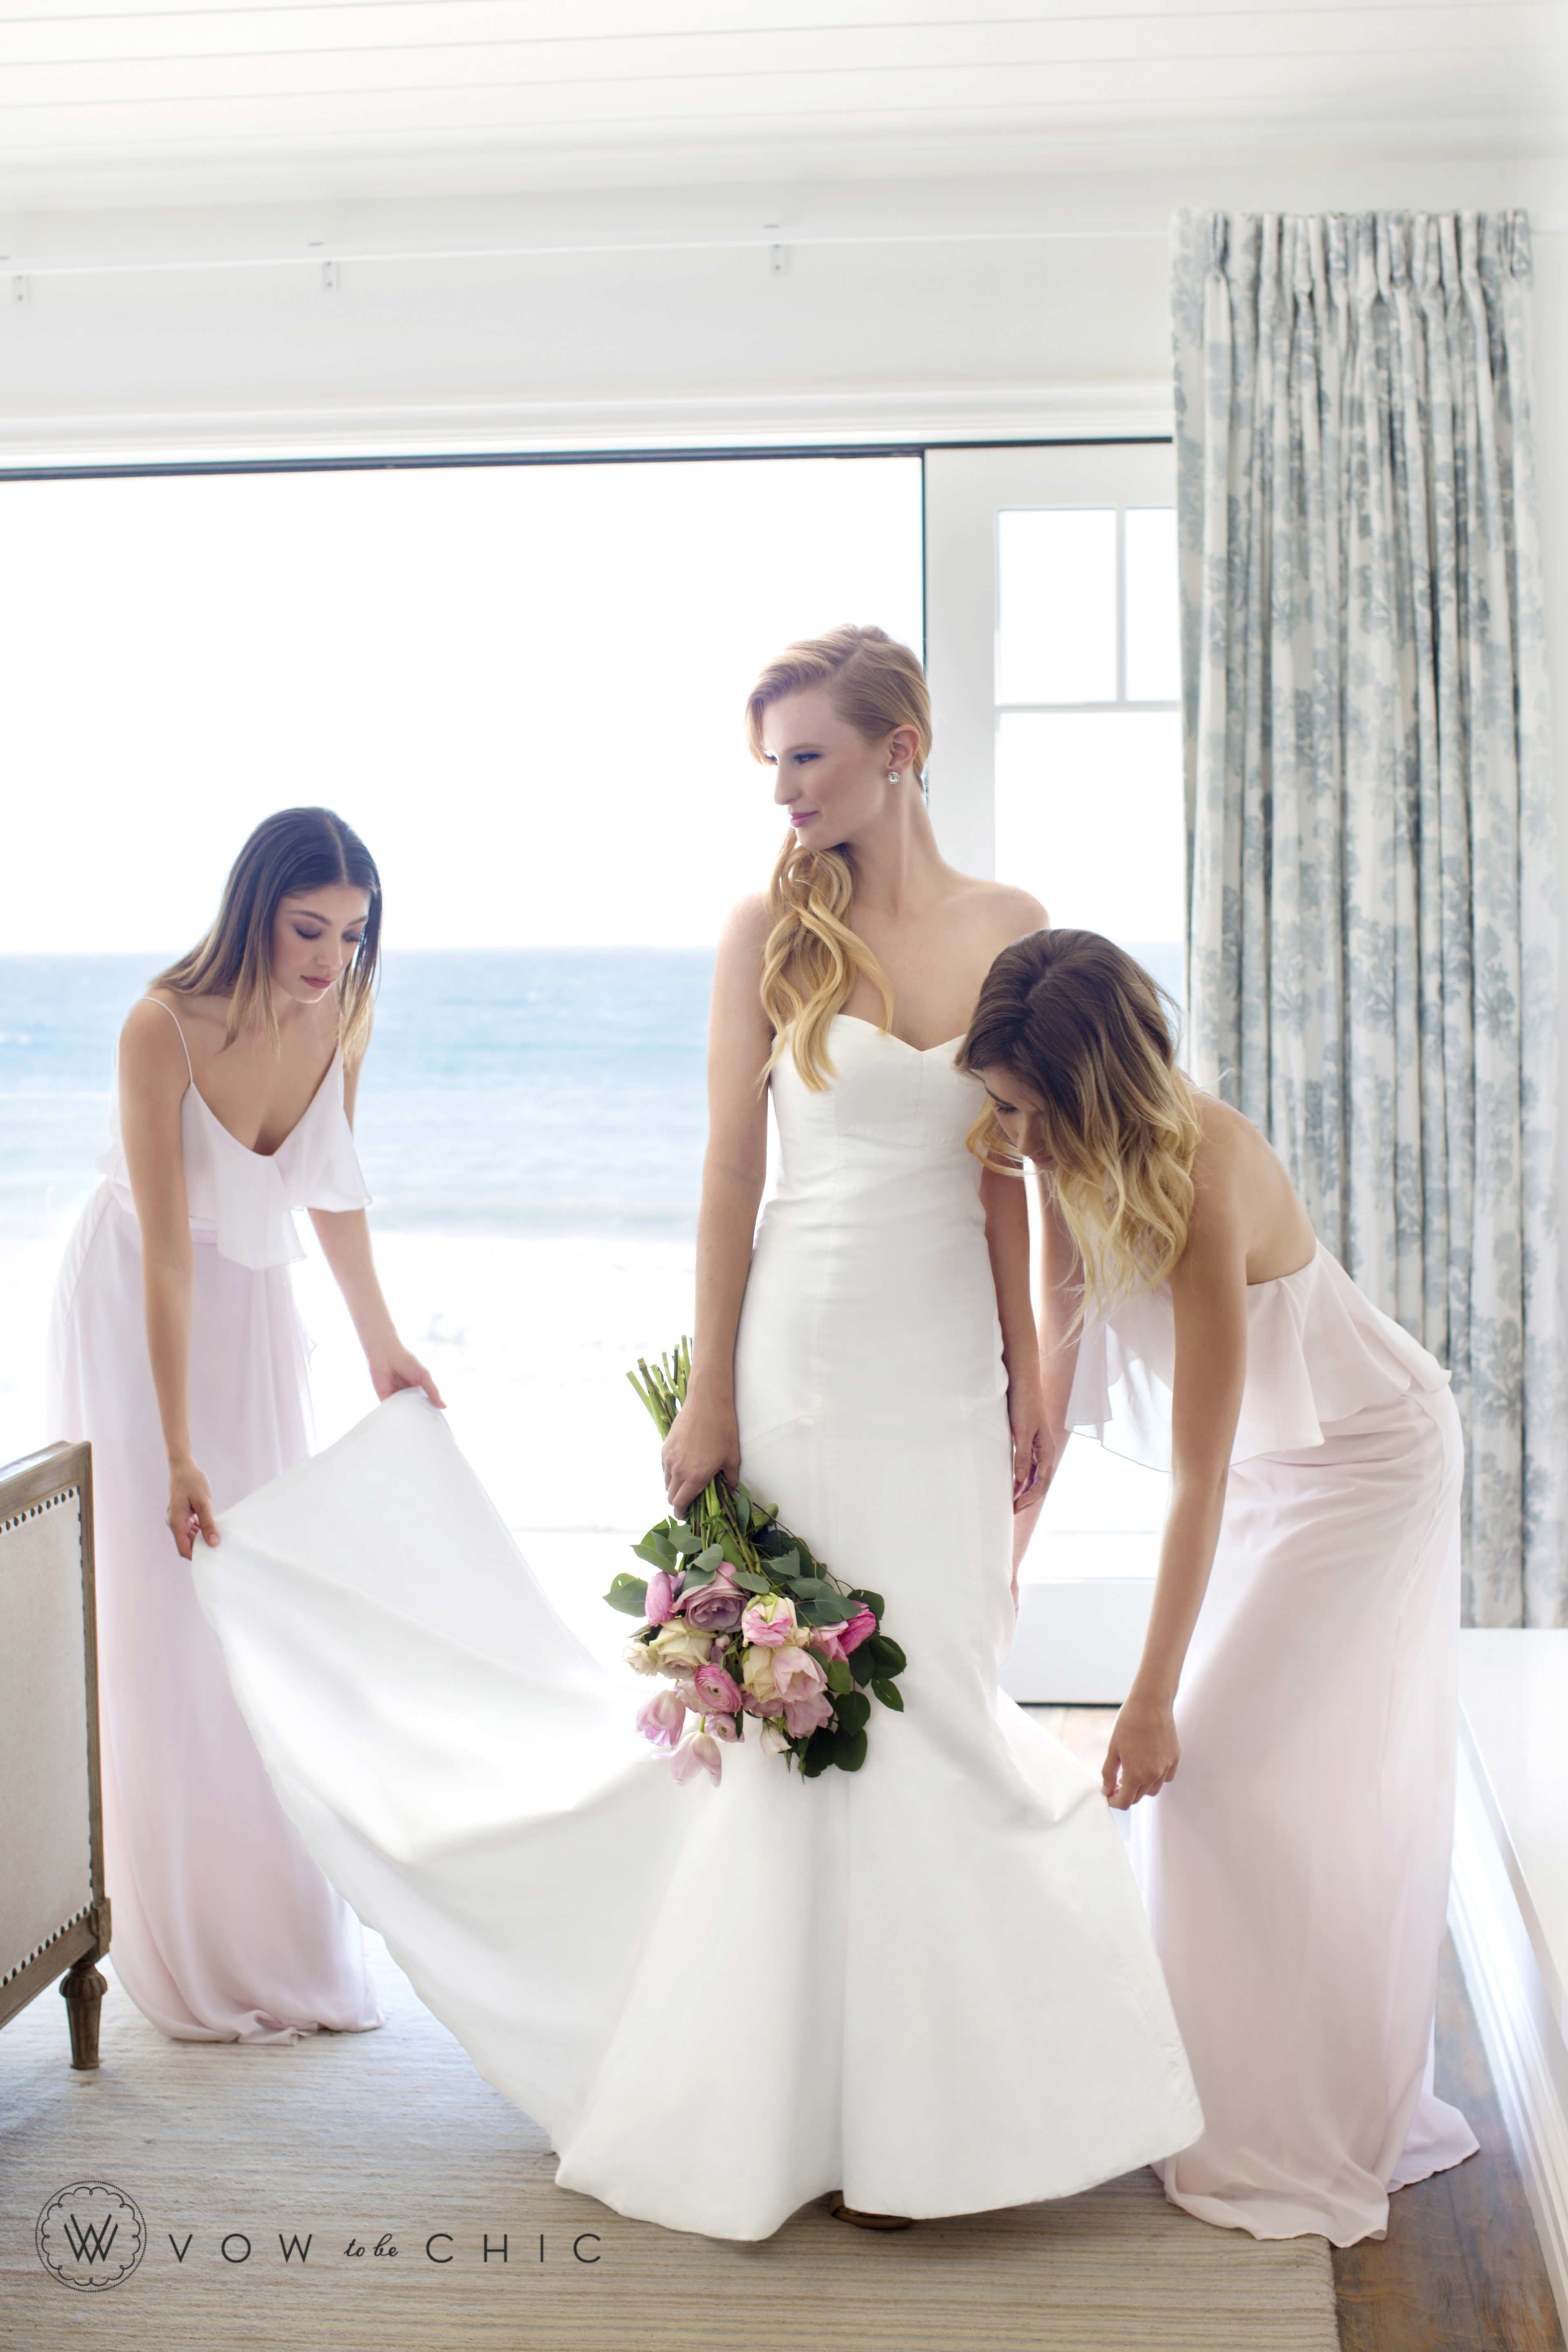 Vow to Be Chic has lovely bridesmaids dresses and wedding gowns - so ...